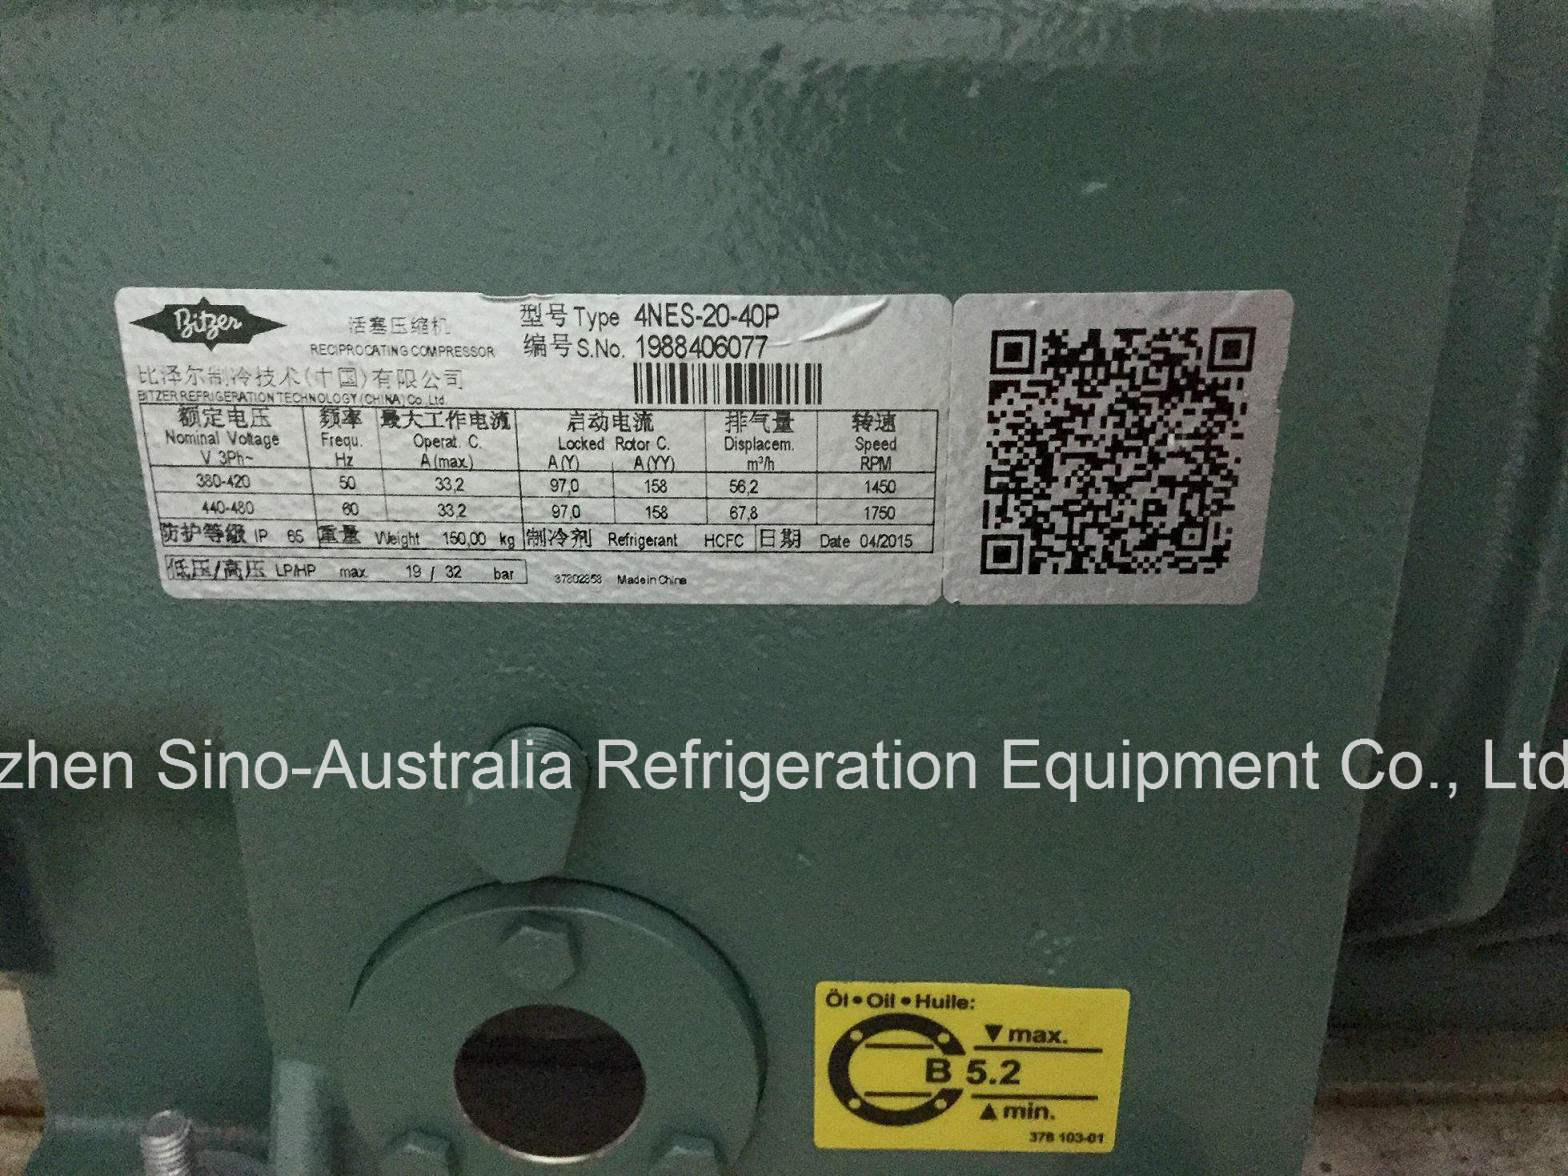 Germany Bitzer Brand Semi-Hermetic Compressors R22 Refrigerant Octagon Series